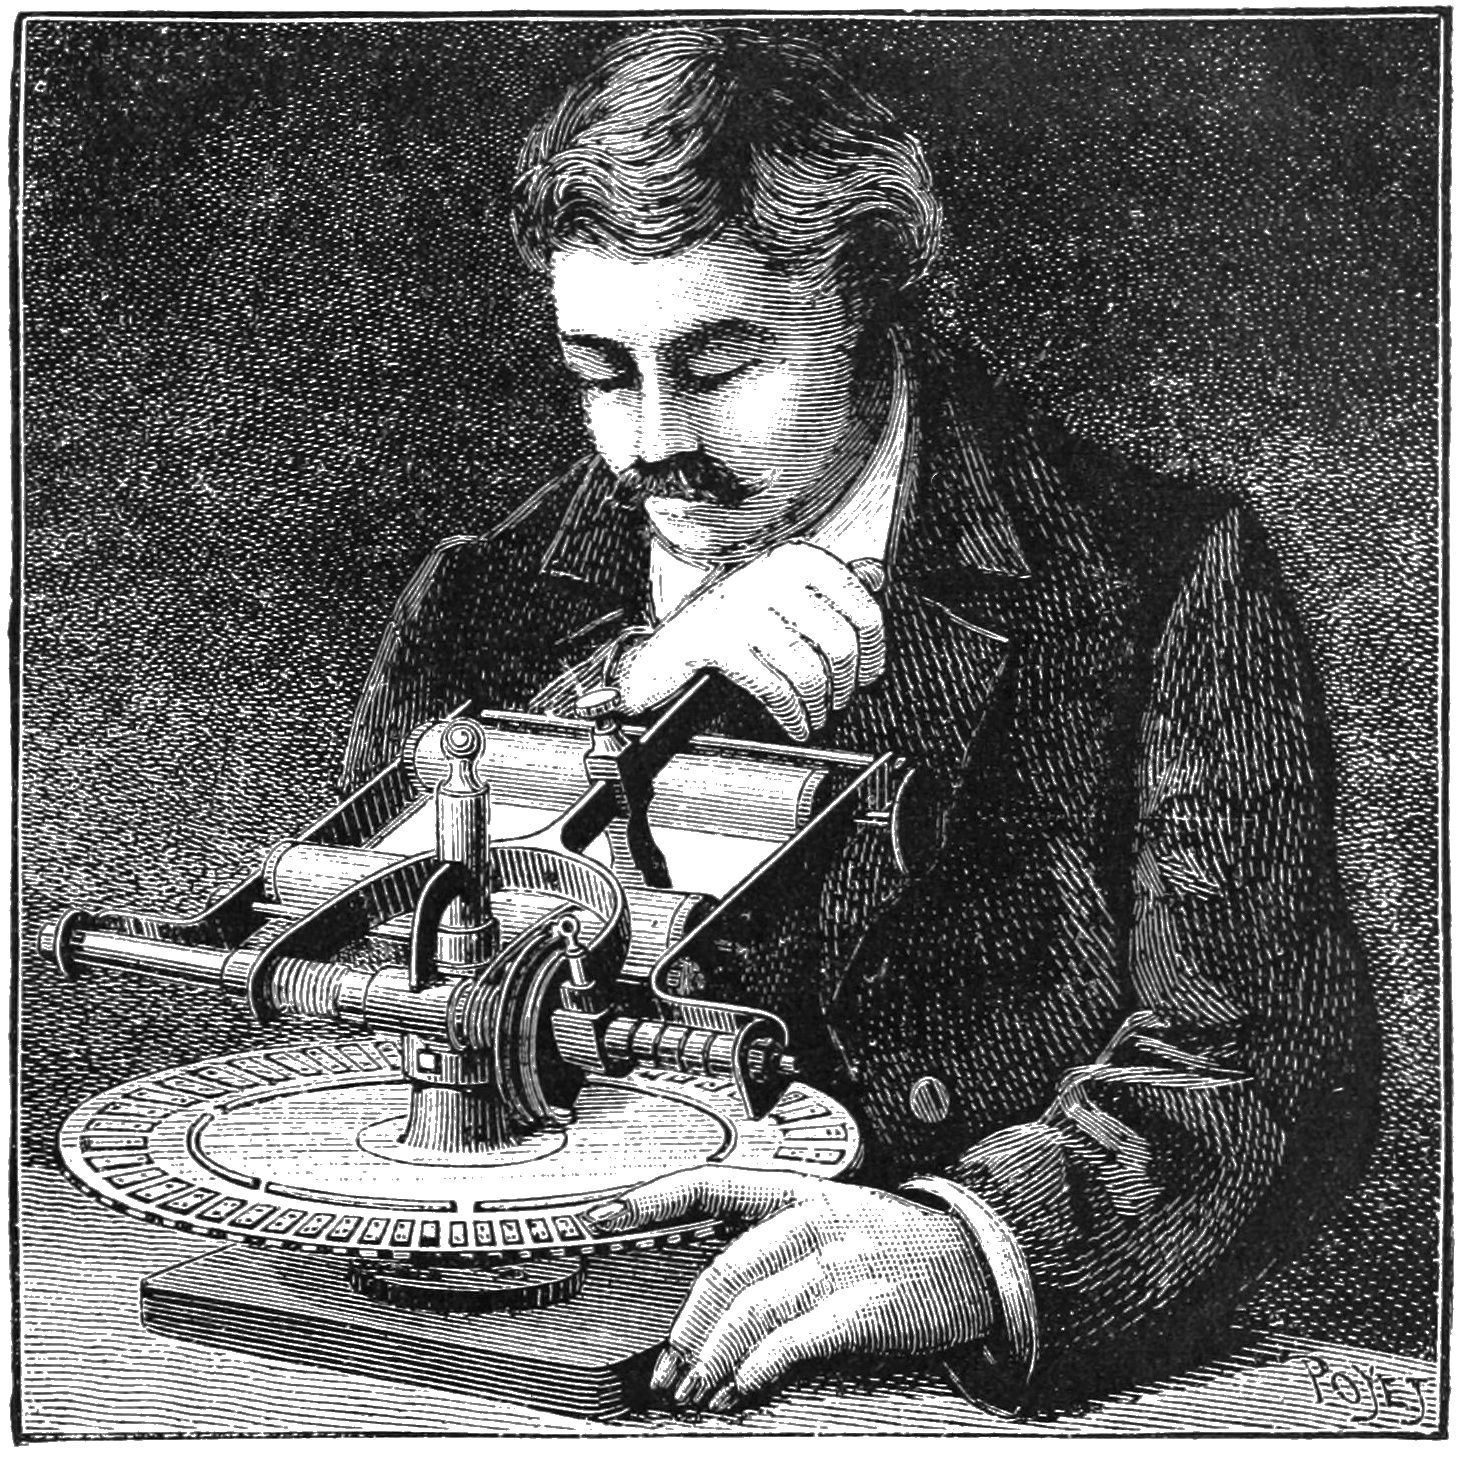 https://upload.wikimedia.org/wikipedia/commons/c/c8/PSM_V33_D669_A_blind_man_writing_with_the_mauler_machine.jpg